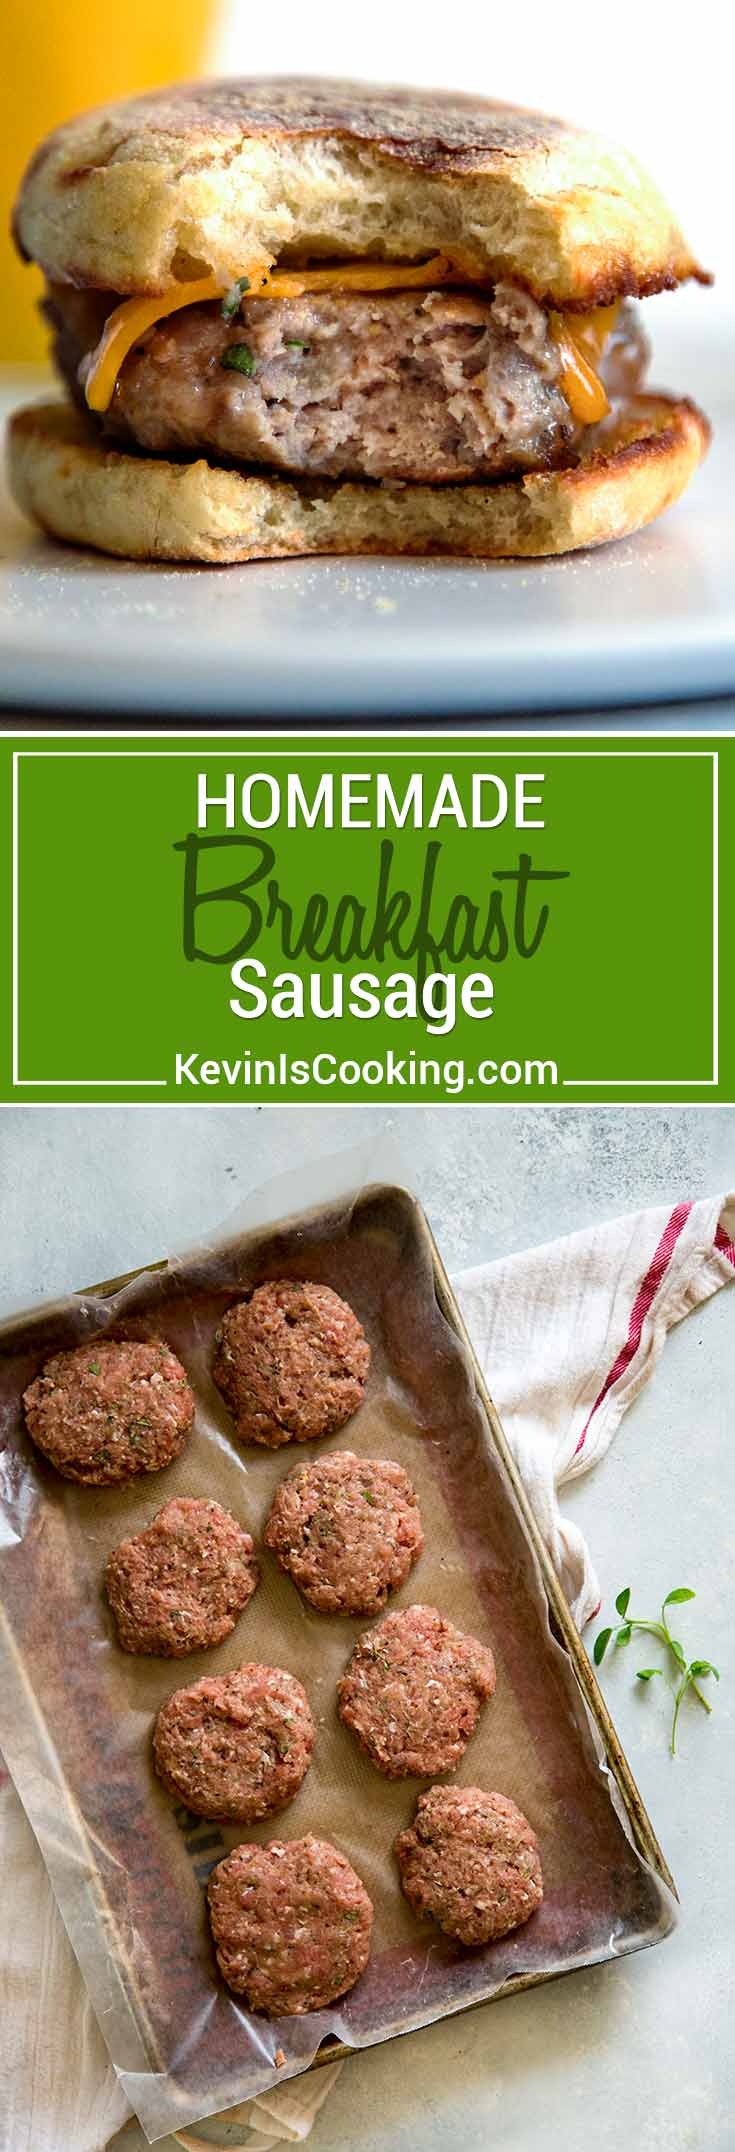 A combination of ground turkey and pork is my favorite and with a little maple syrup and spices, you can have Homemade Breakfast Sausage in mere minutes!